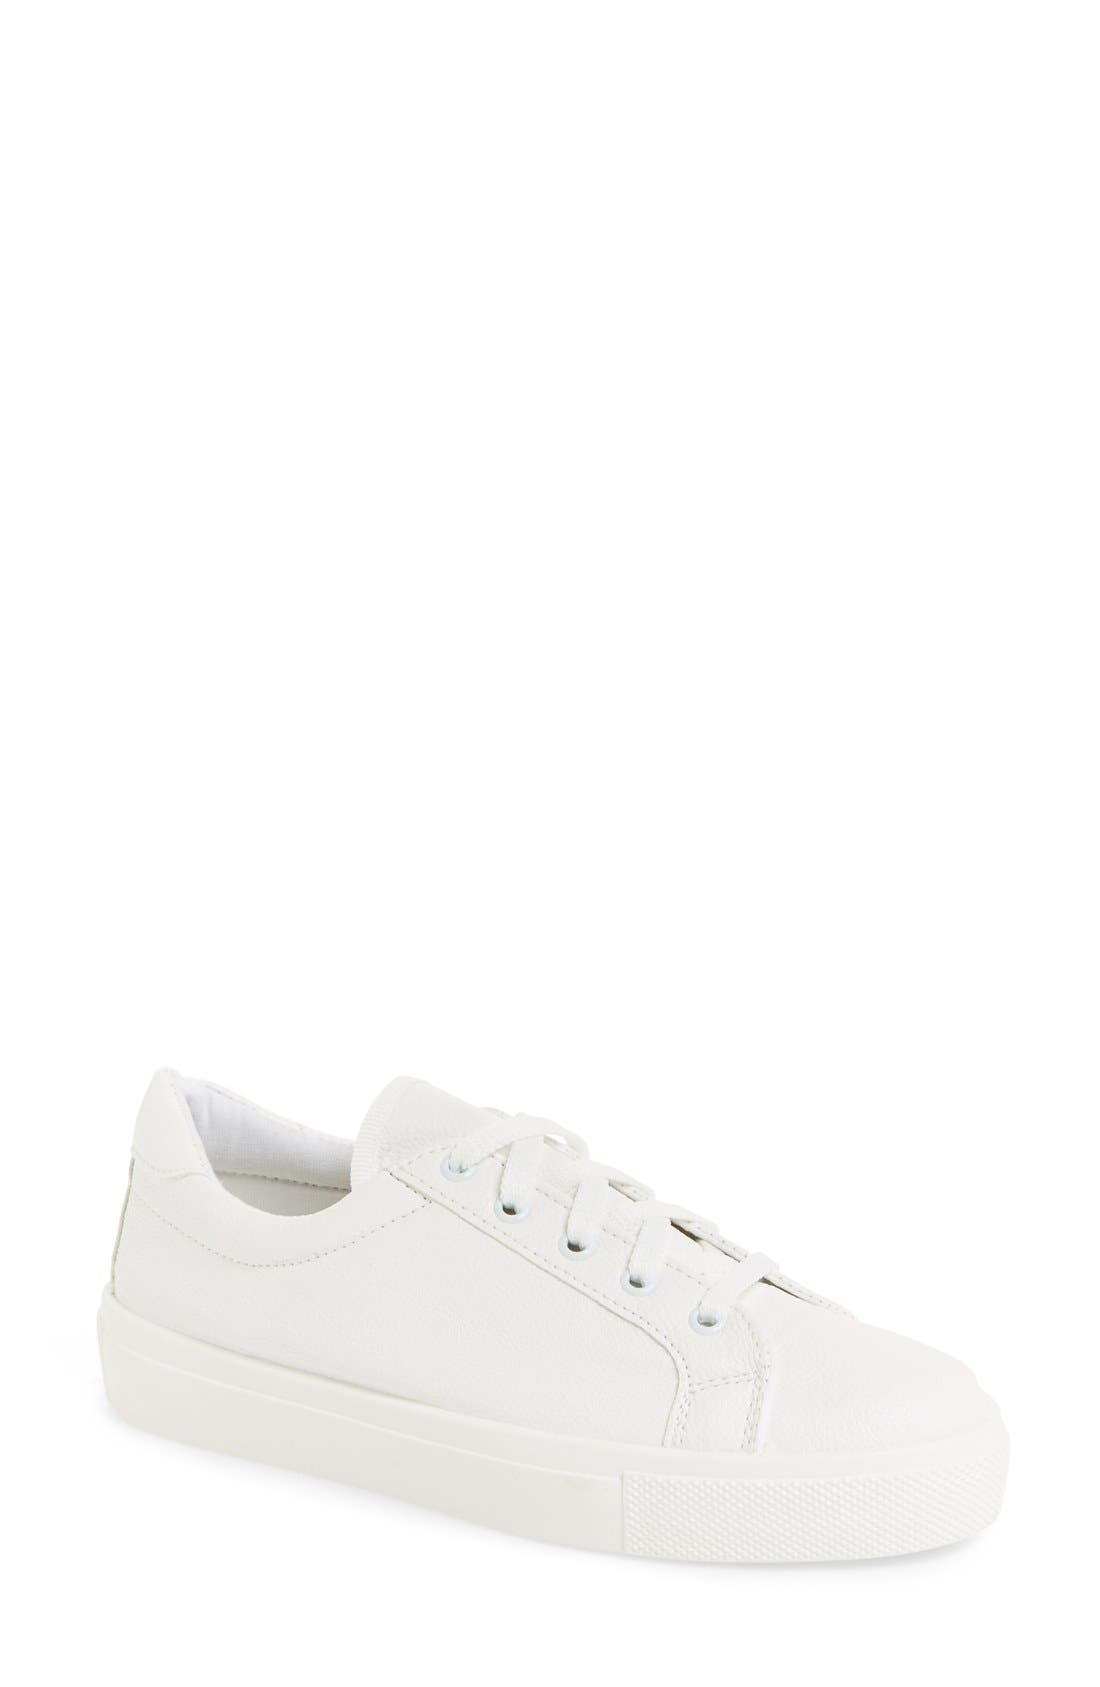 Alternate Image 1 Selected - Topshop 'Copenhagen' Sneaker (Women)